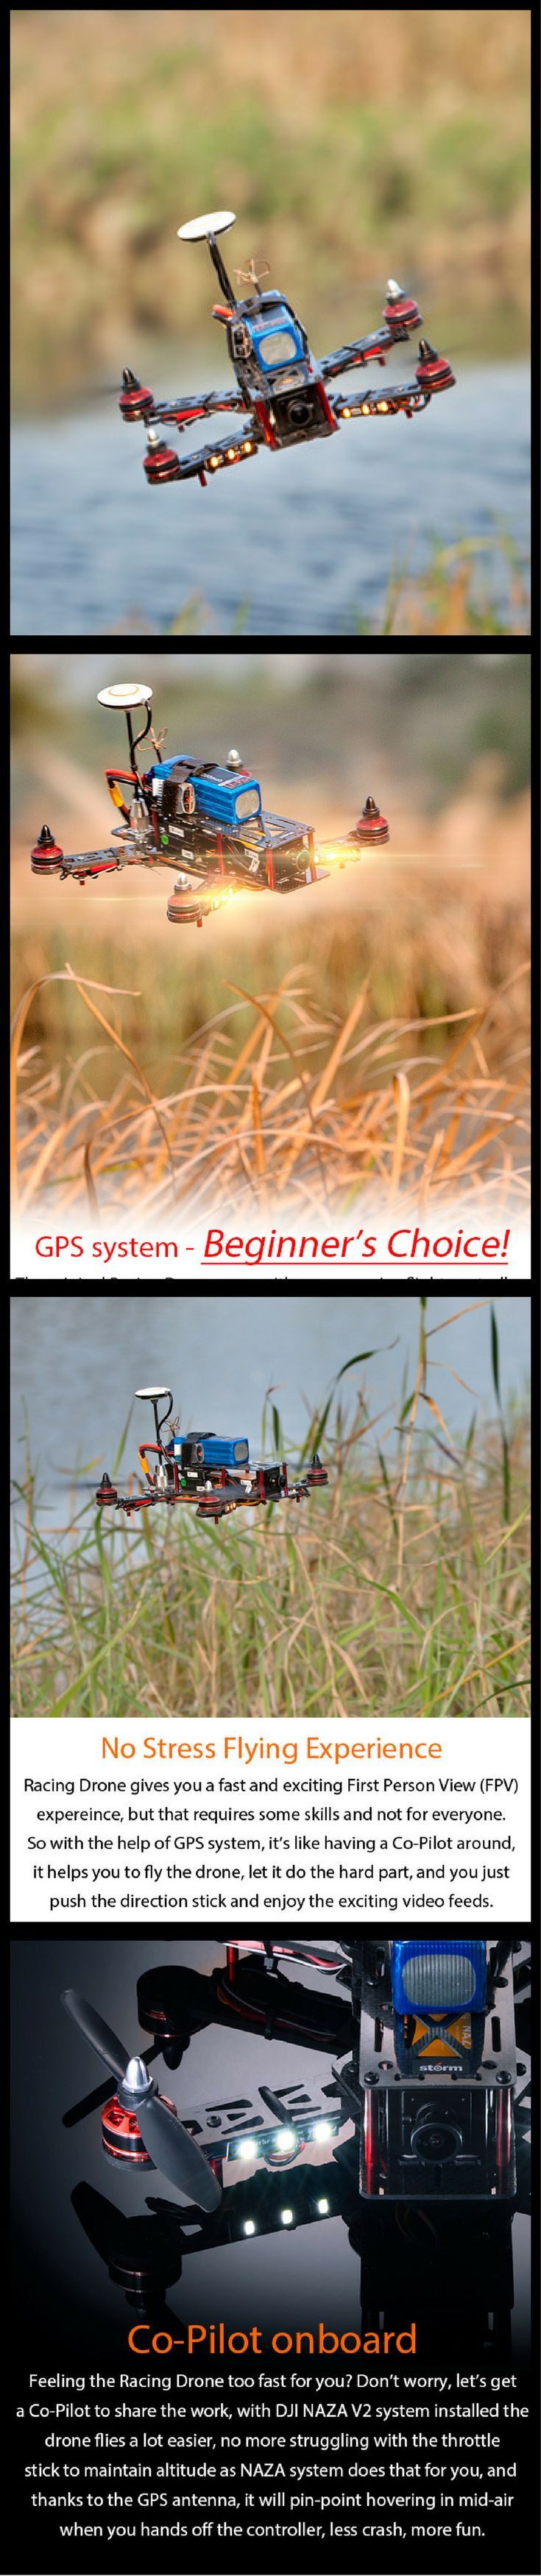 This is the Storm Racing Drone GPS version, it has several upgrades over the stock model, NAZA V2 GPS system further increase the stability and accuracy, especially in Altitude Hold, DJI has it's own secret recipe in this area, you don't need to adjust throttle stick all the time like other flight controllers and the drone will stay at the same height. Advanced GPS algorithms allows pin-point hovering when it has good GPS reception, you can hands off the RC controller and it stays there.